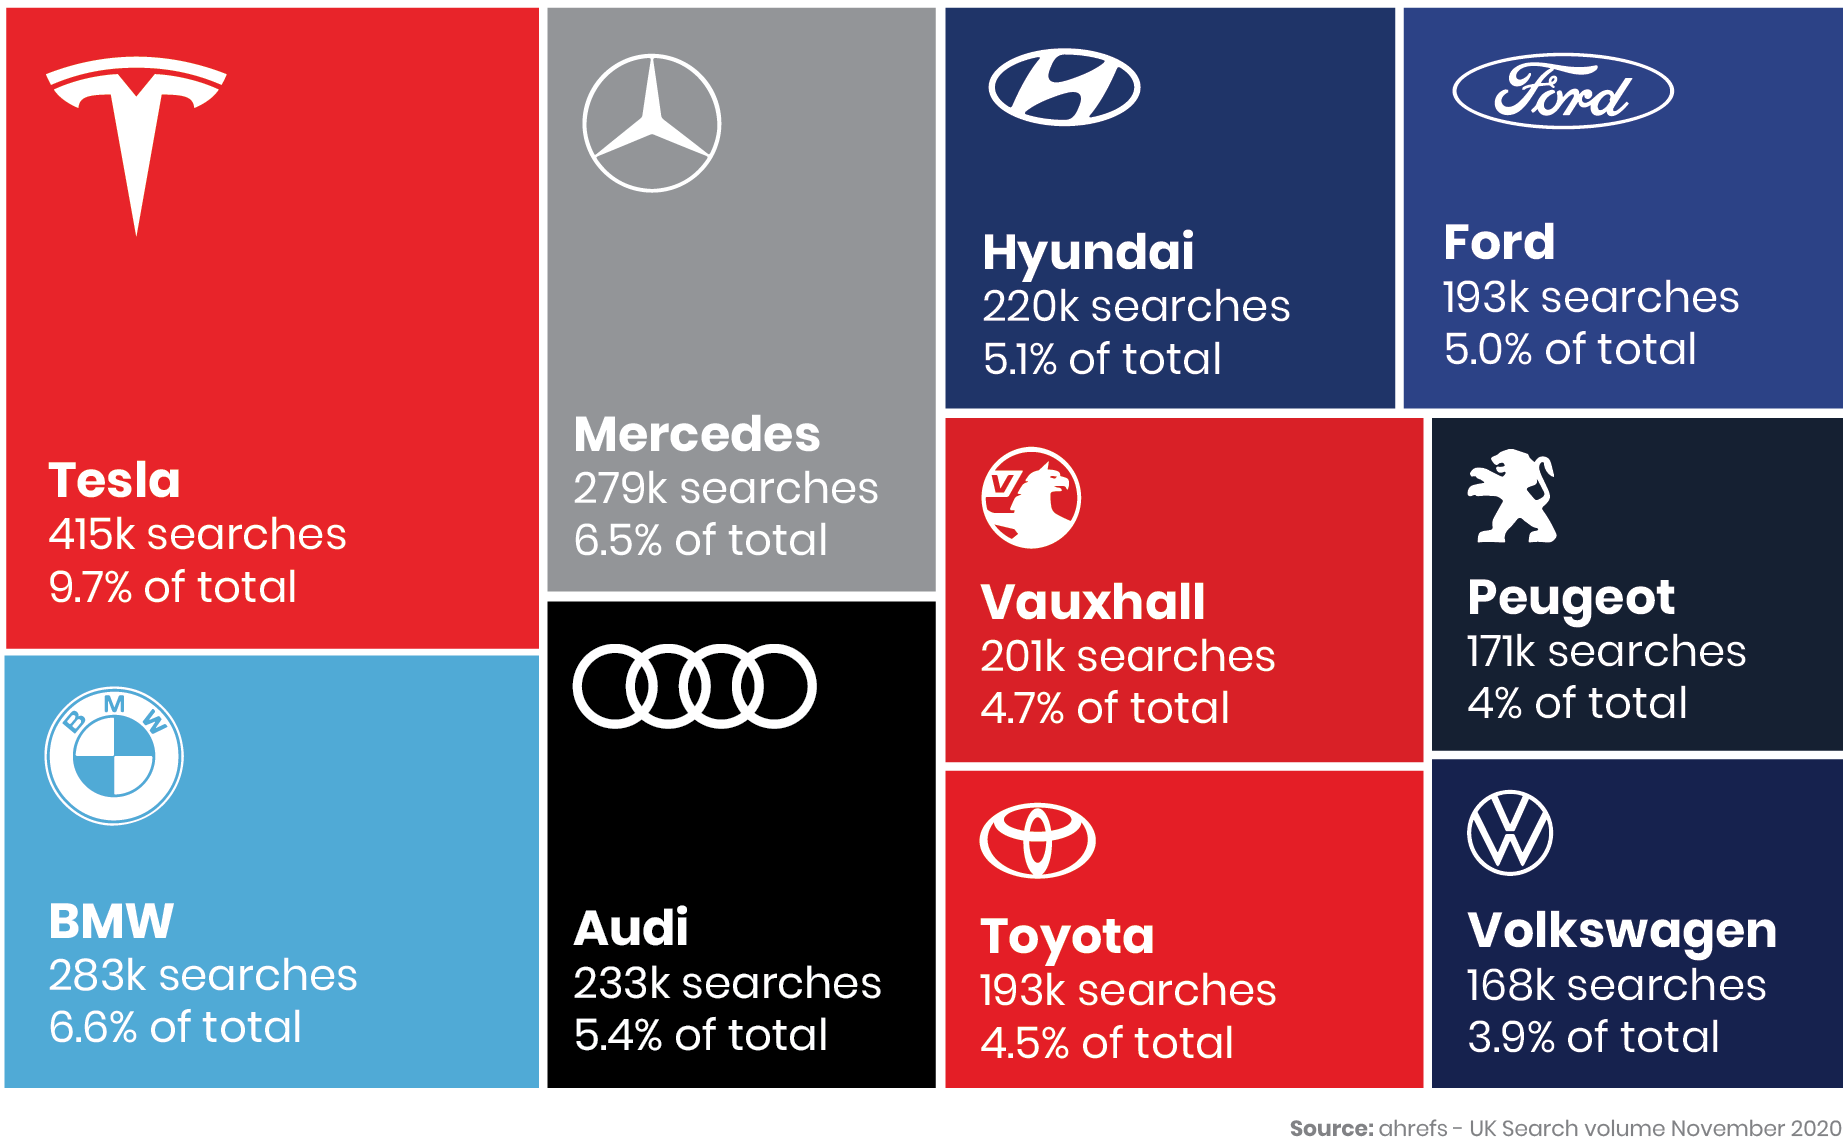 Car Brands By Search Volumes in the UK